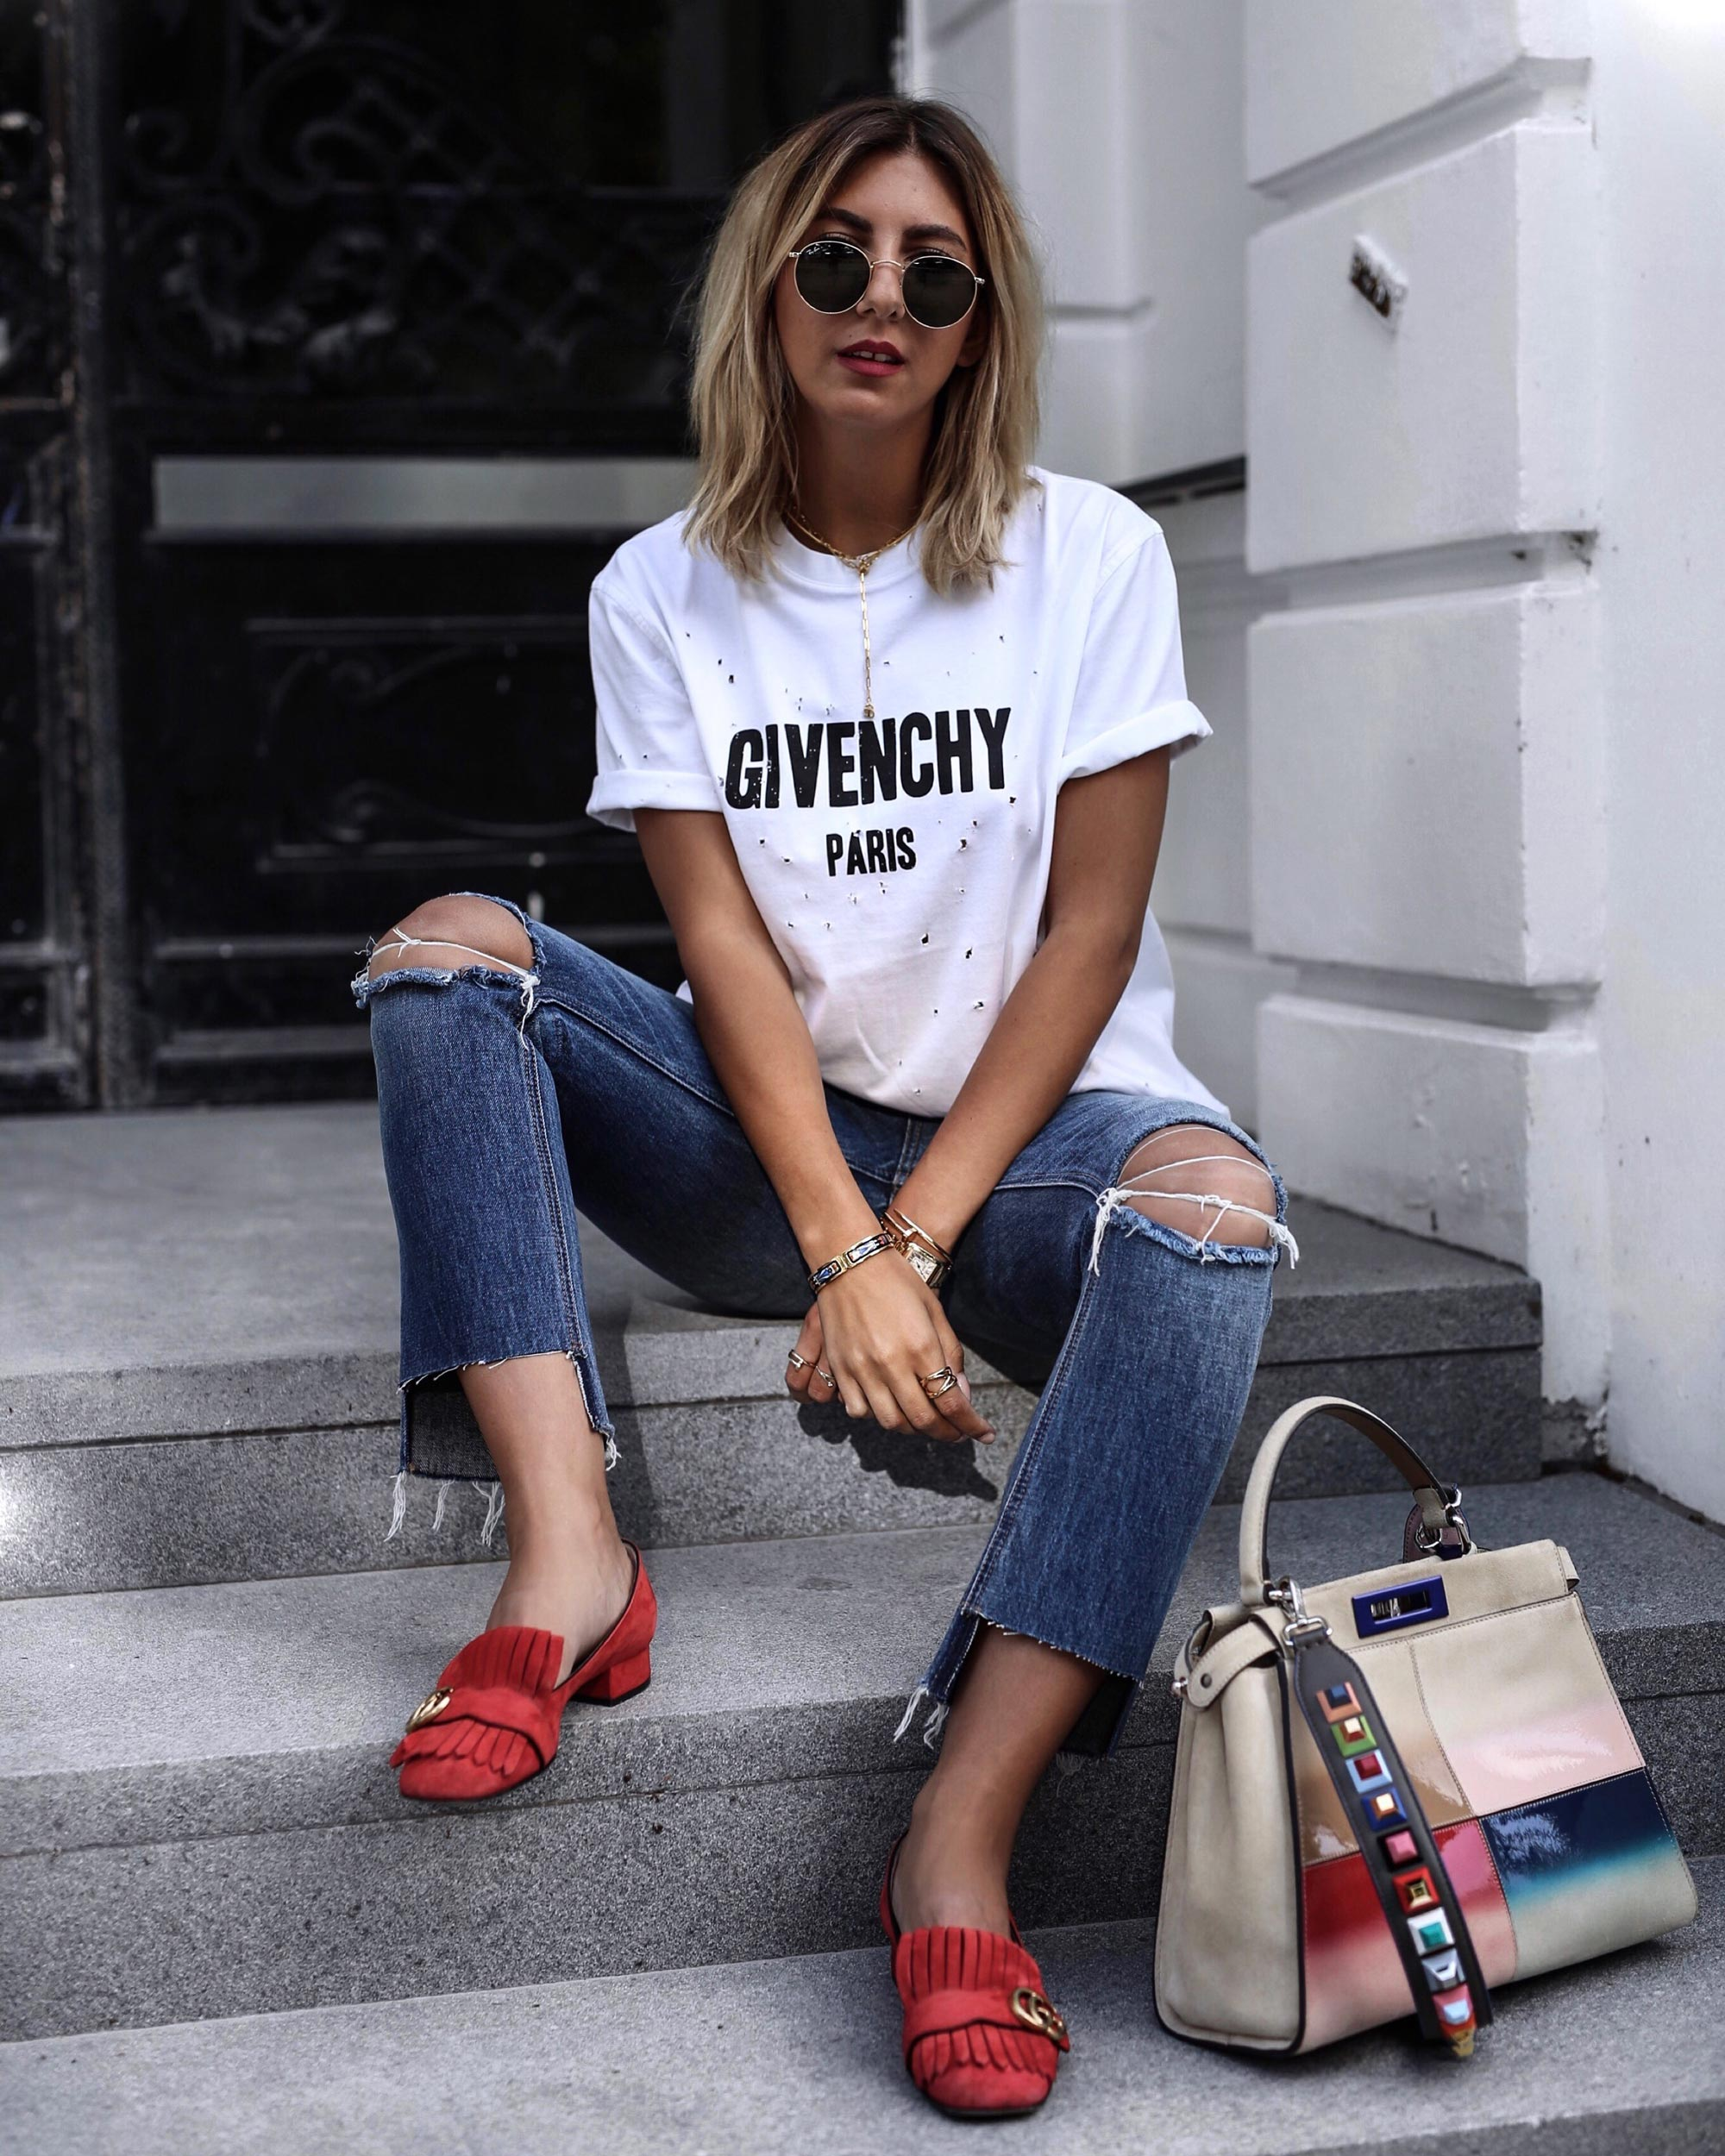 givenchy_statement_shirt